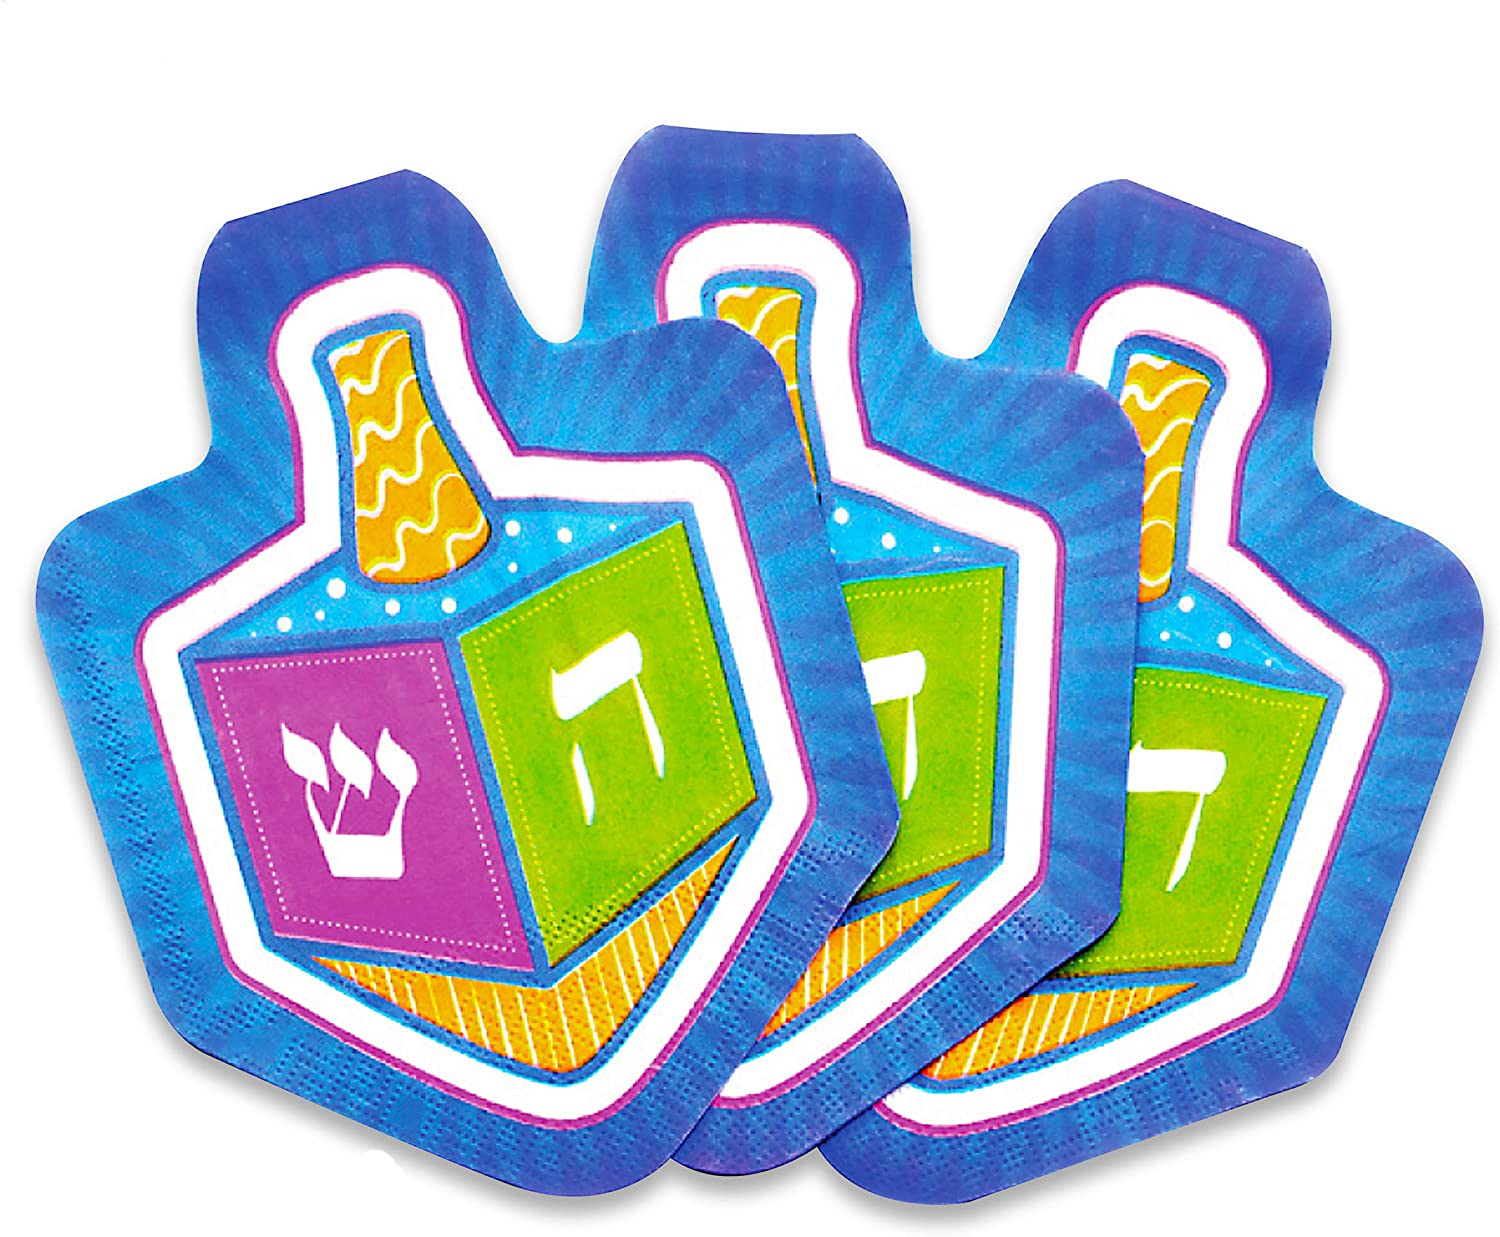 Chanuka Dreidel Napkins - 10 pack